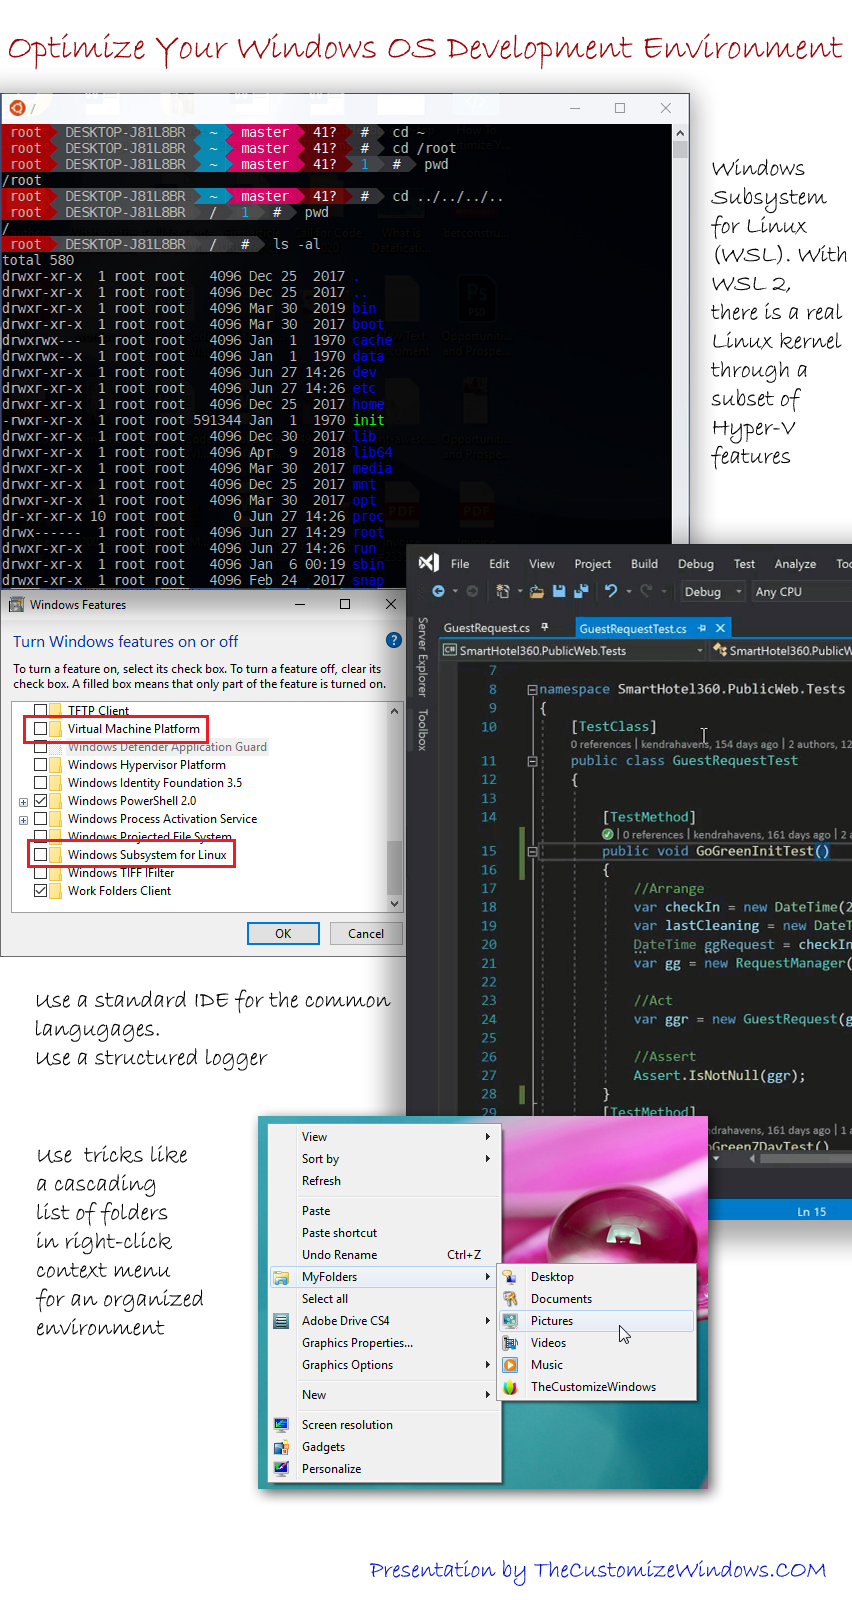 How To Optimize Your Windows OS Development